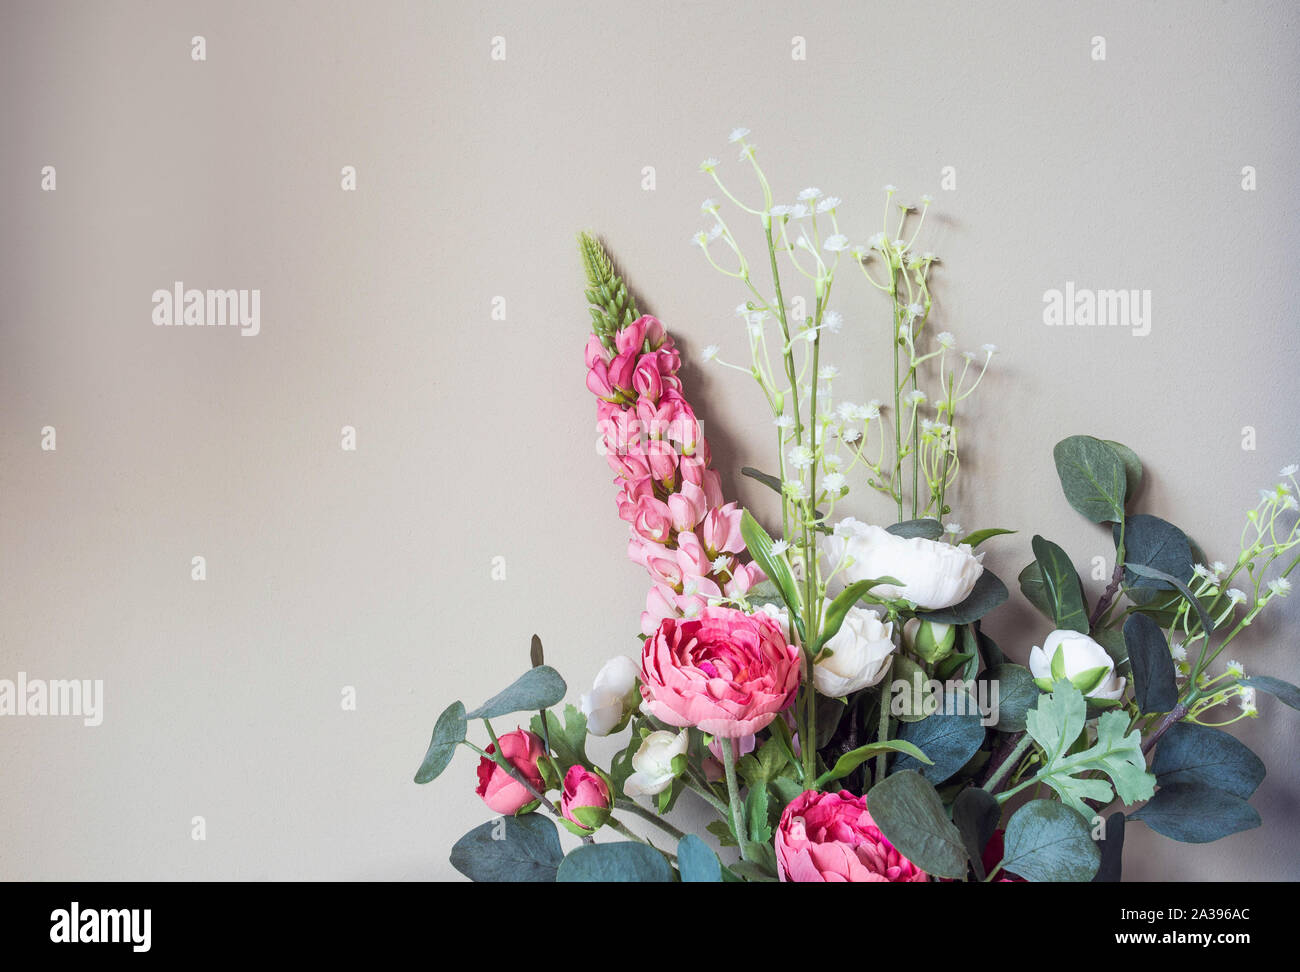 Small Bouquet Of Pink Flowers Grey Cement Wall Background Styled Stock Image Mockup For Text Artwork Quotes Lettering Website Banner Template Stock Photo Alamy